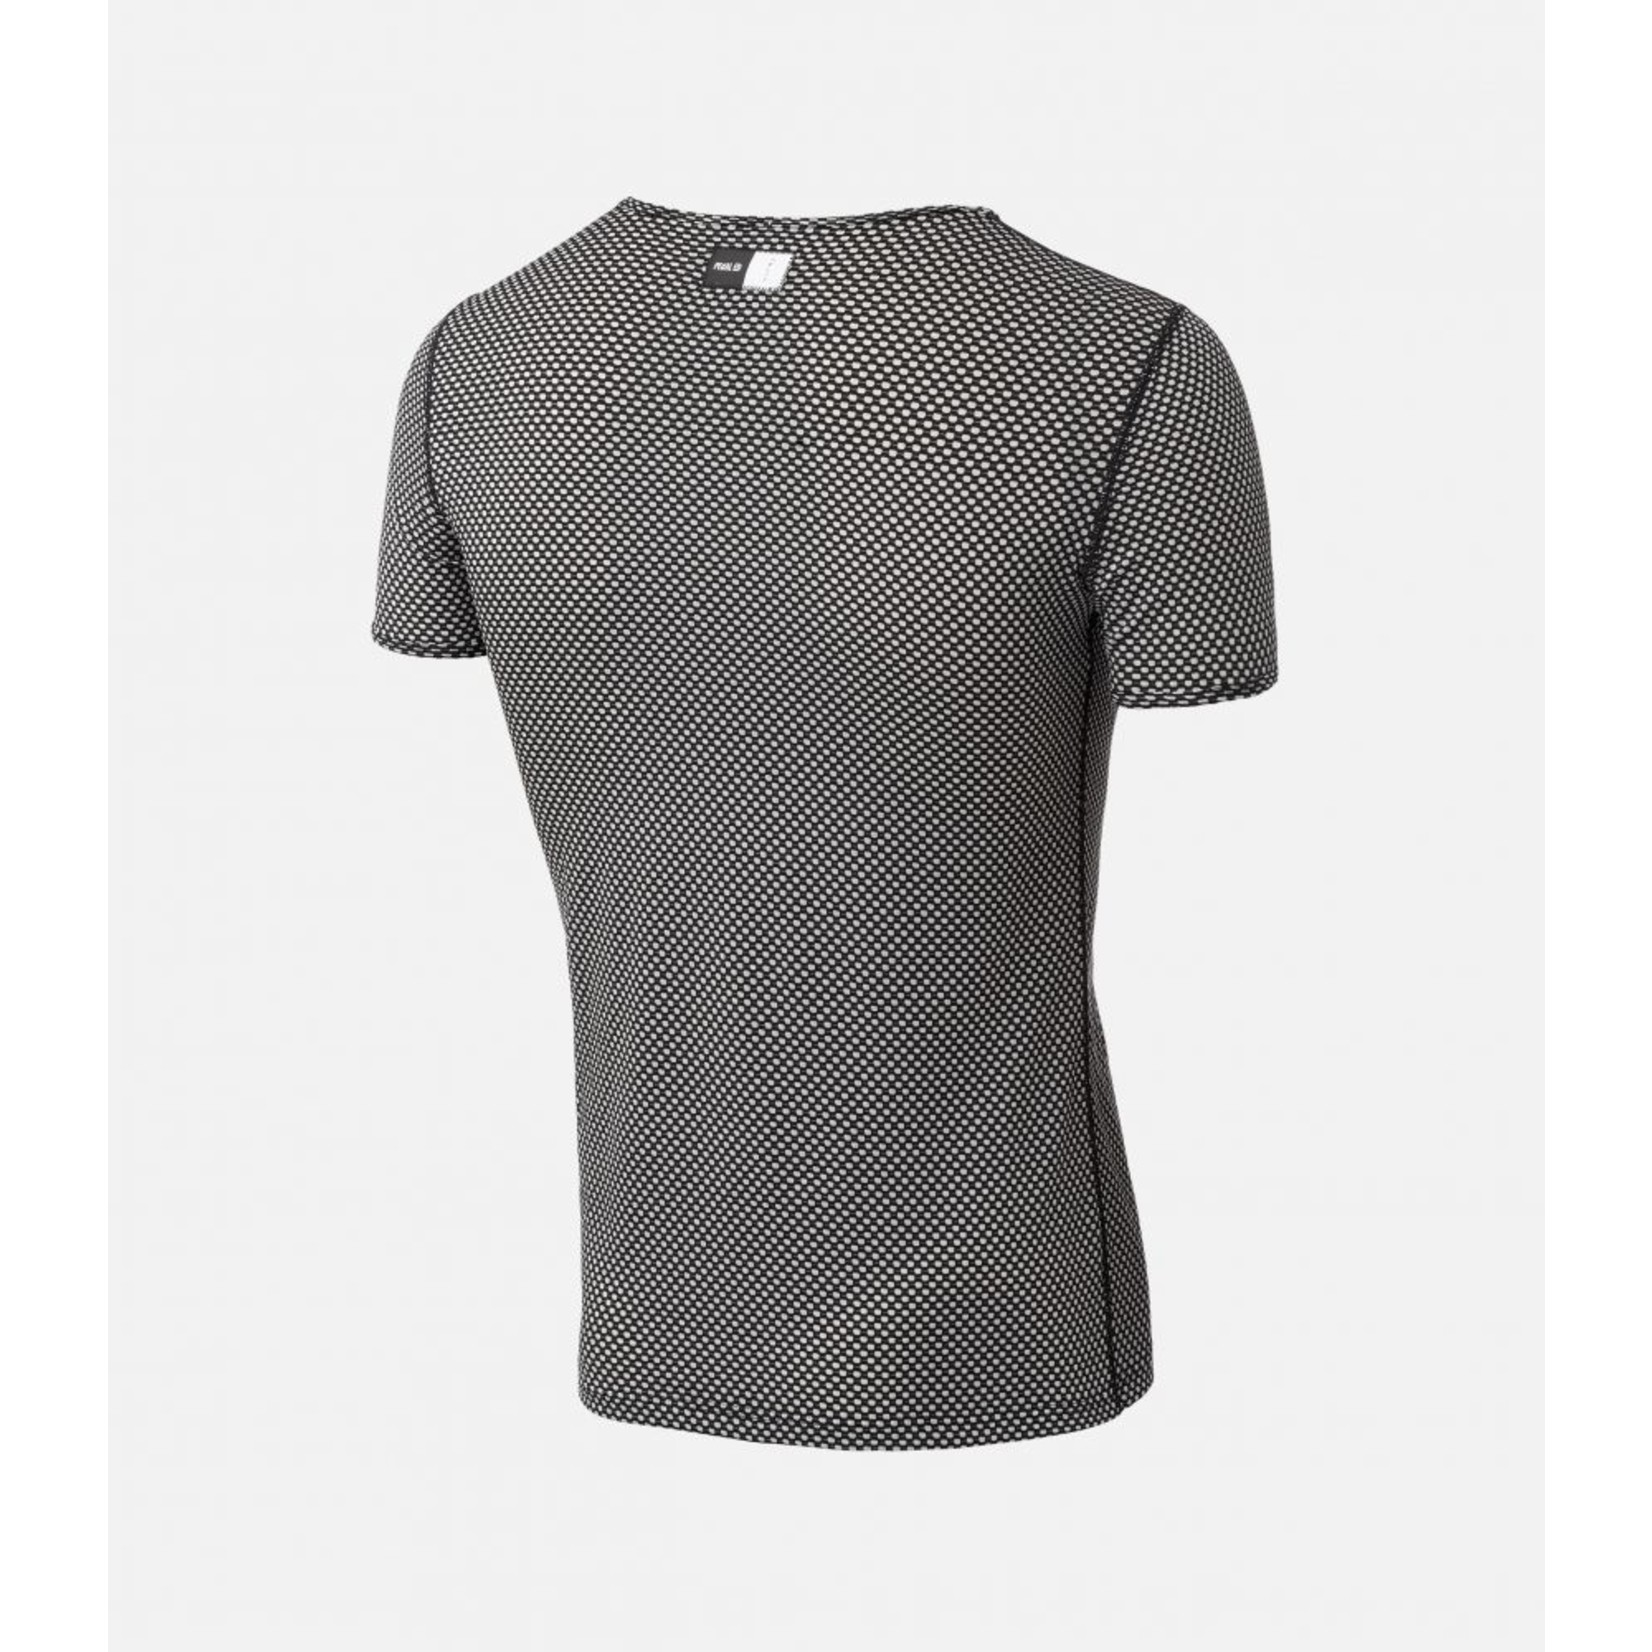 PEdALED PEdALED Ultralight Base layer L